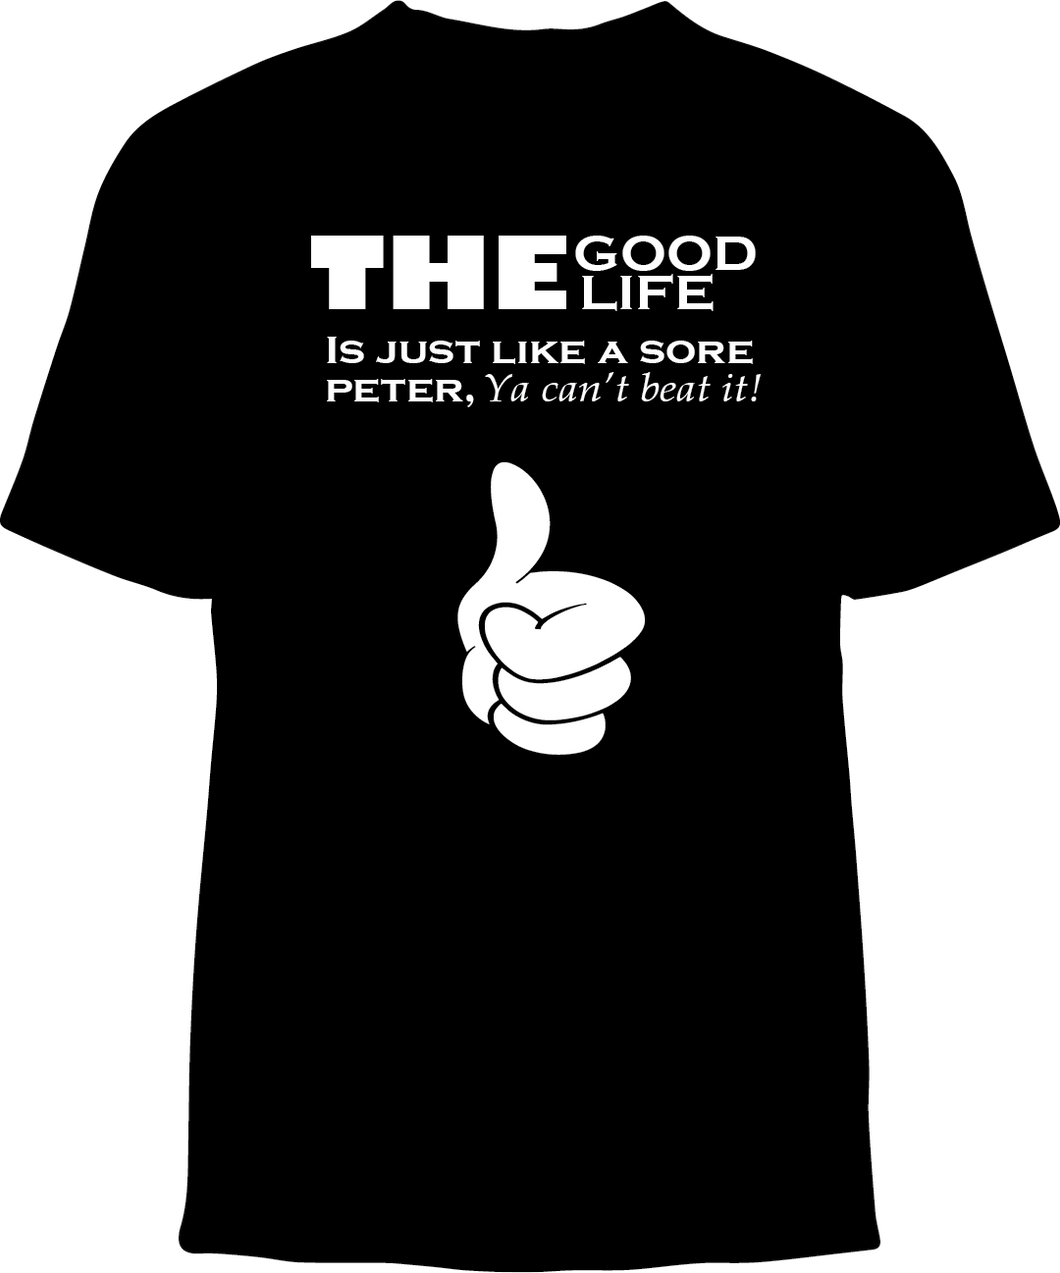 Skelebone Short Sleeve T-shirt, Good Life Front Print